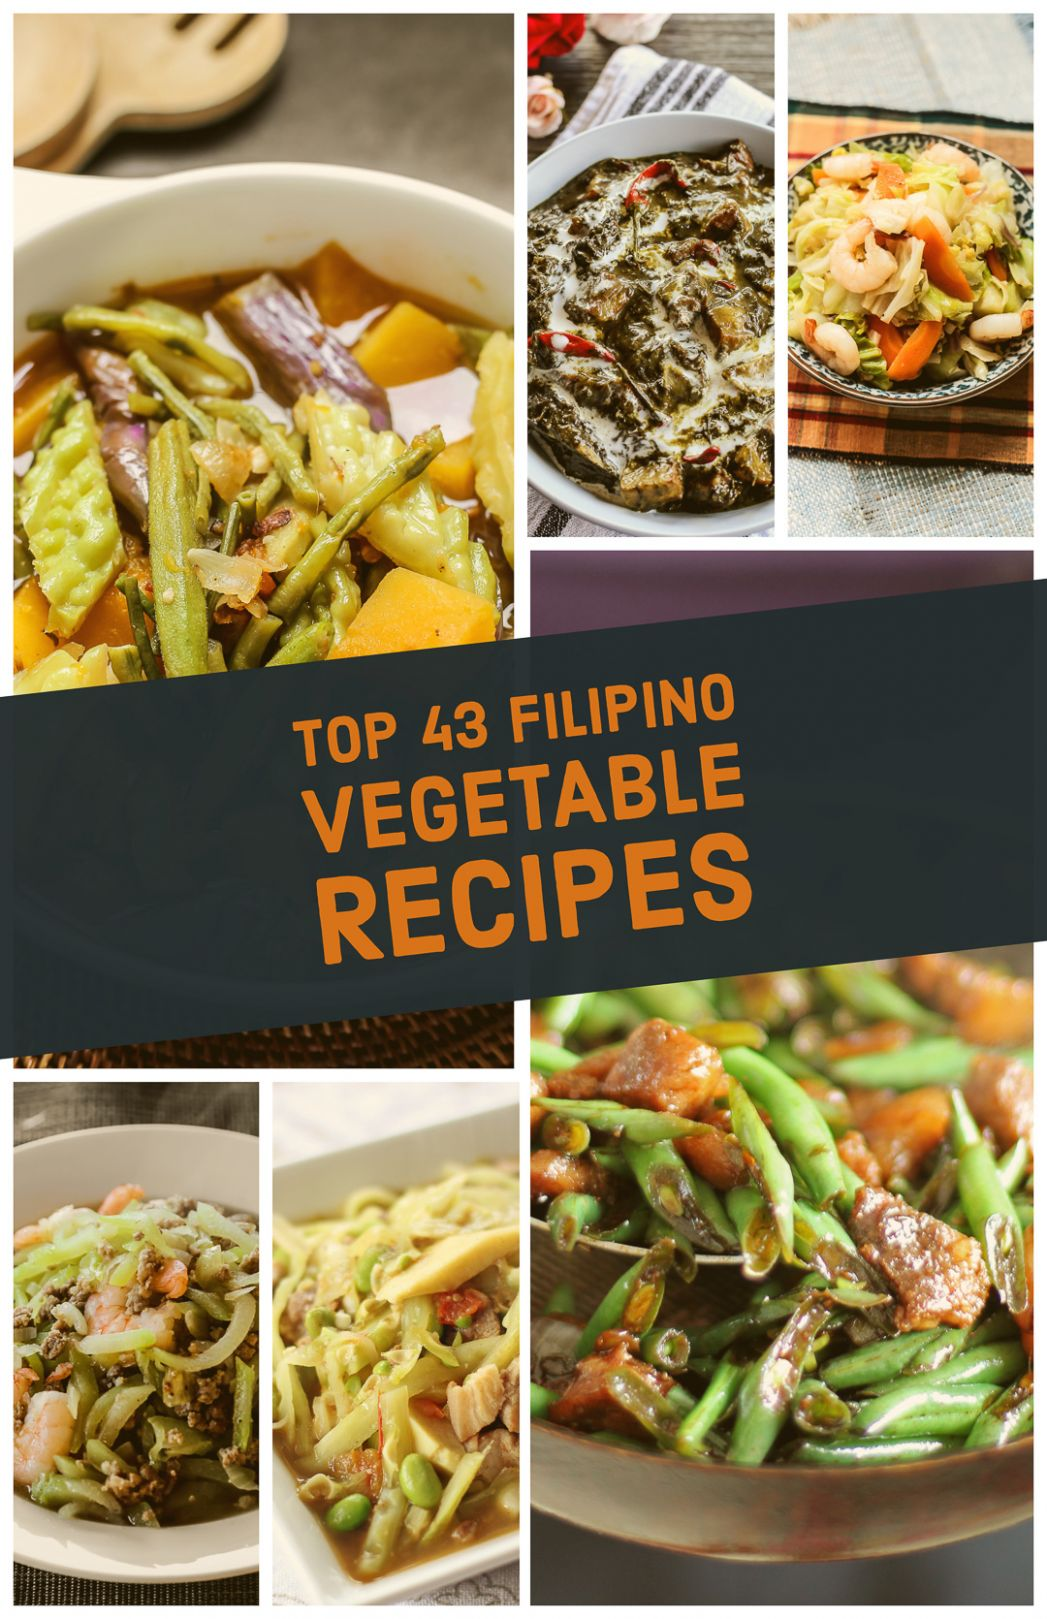 Top 10 Filipino Vegetable Recipes - Ang Sarap - Vegetable Recipes With Ingredients And Procedure